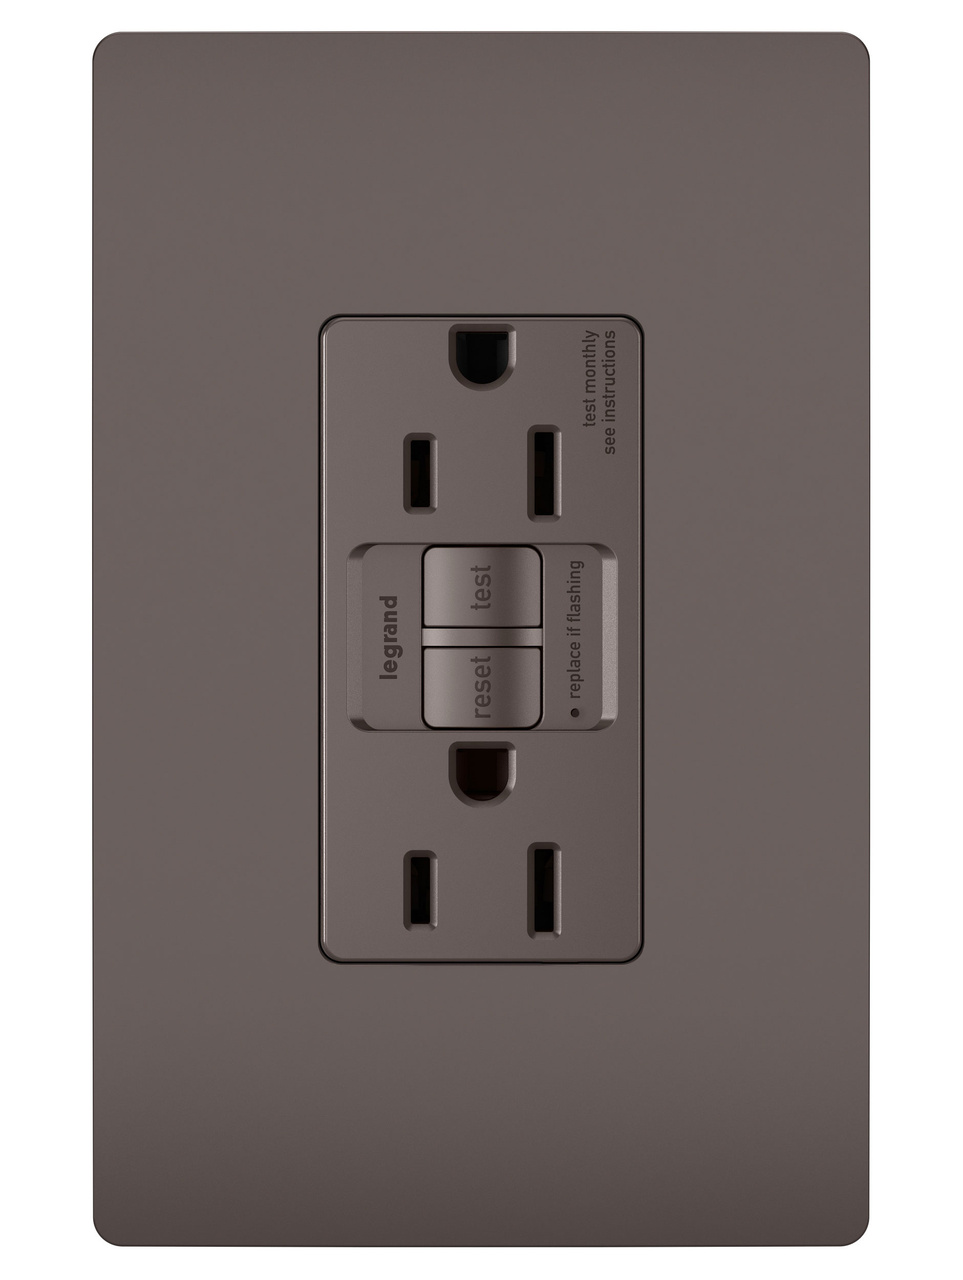 Radiant Spec Grade Tamper Resistant 15a Self Test Duplex Gfci Typical Mains Power Plug Electrical Pinterest Plugs 1597 P